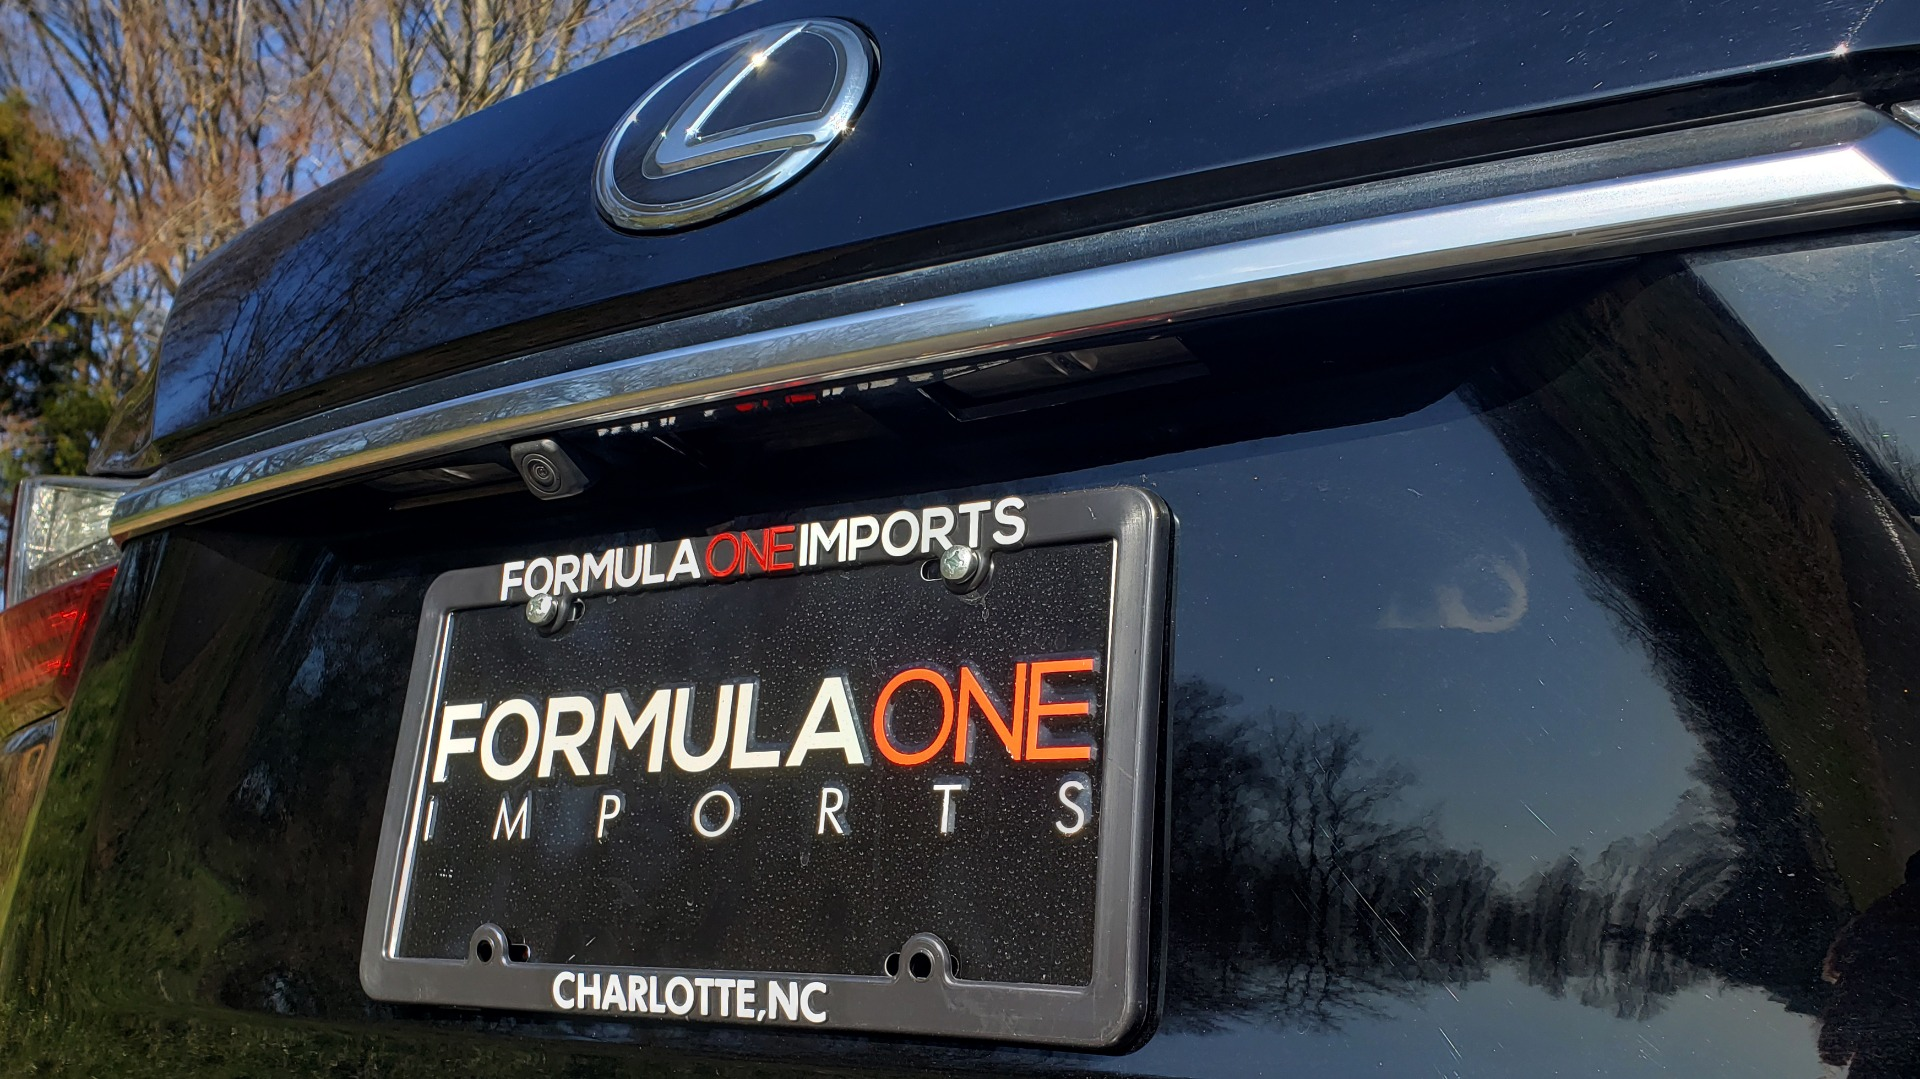 Used 2017 Lexus RX350 AWD F-SPORT / NAV / SUNROOF / BSM / PARK ASST / TOWING / REARVIE for sale Sold at Formula Imports in Charlotte NC 28227 29